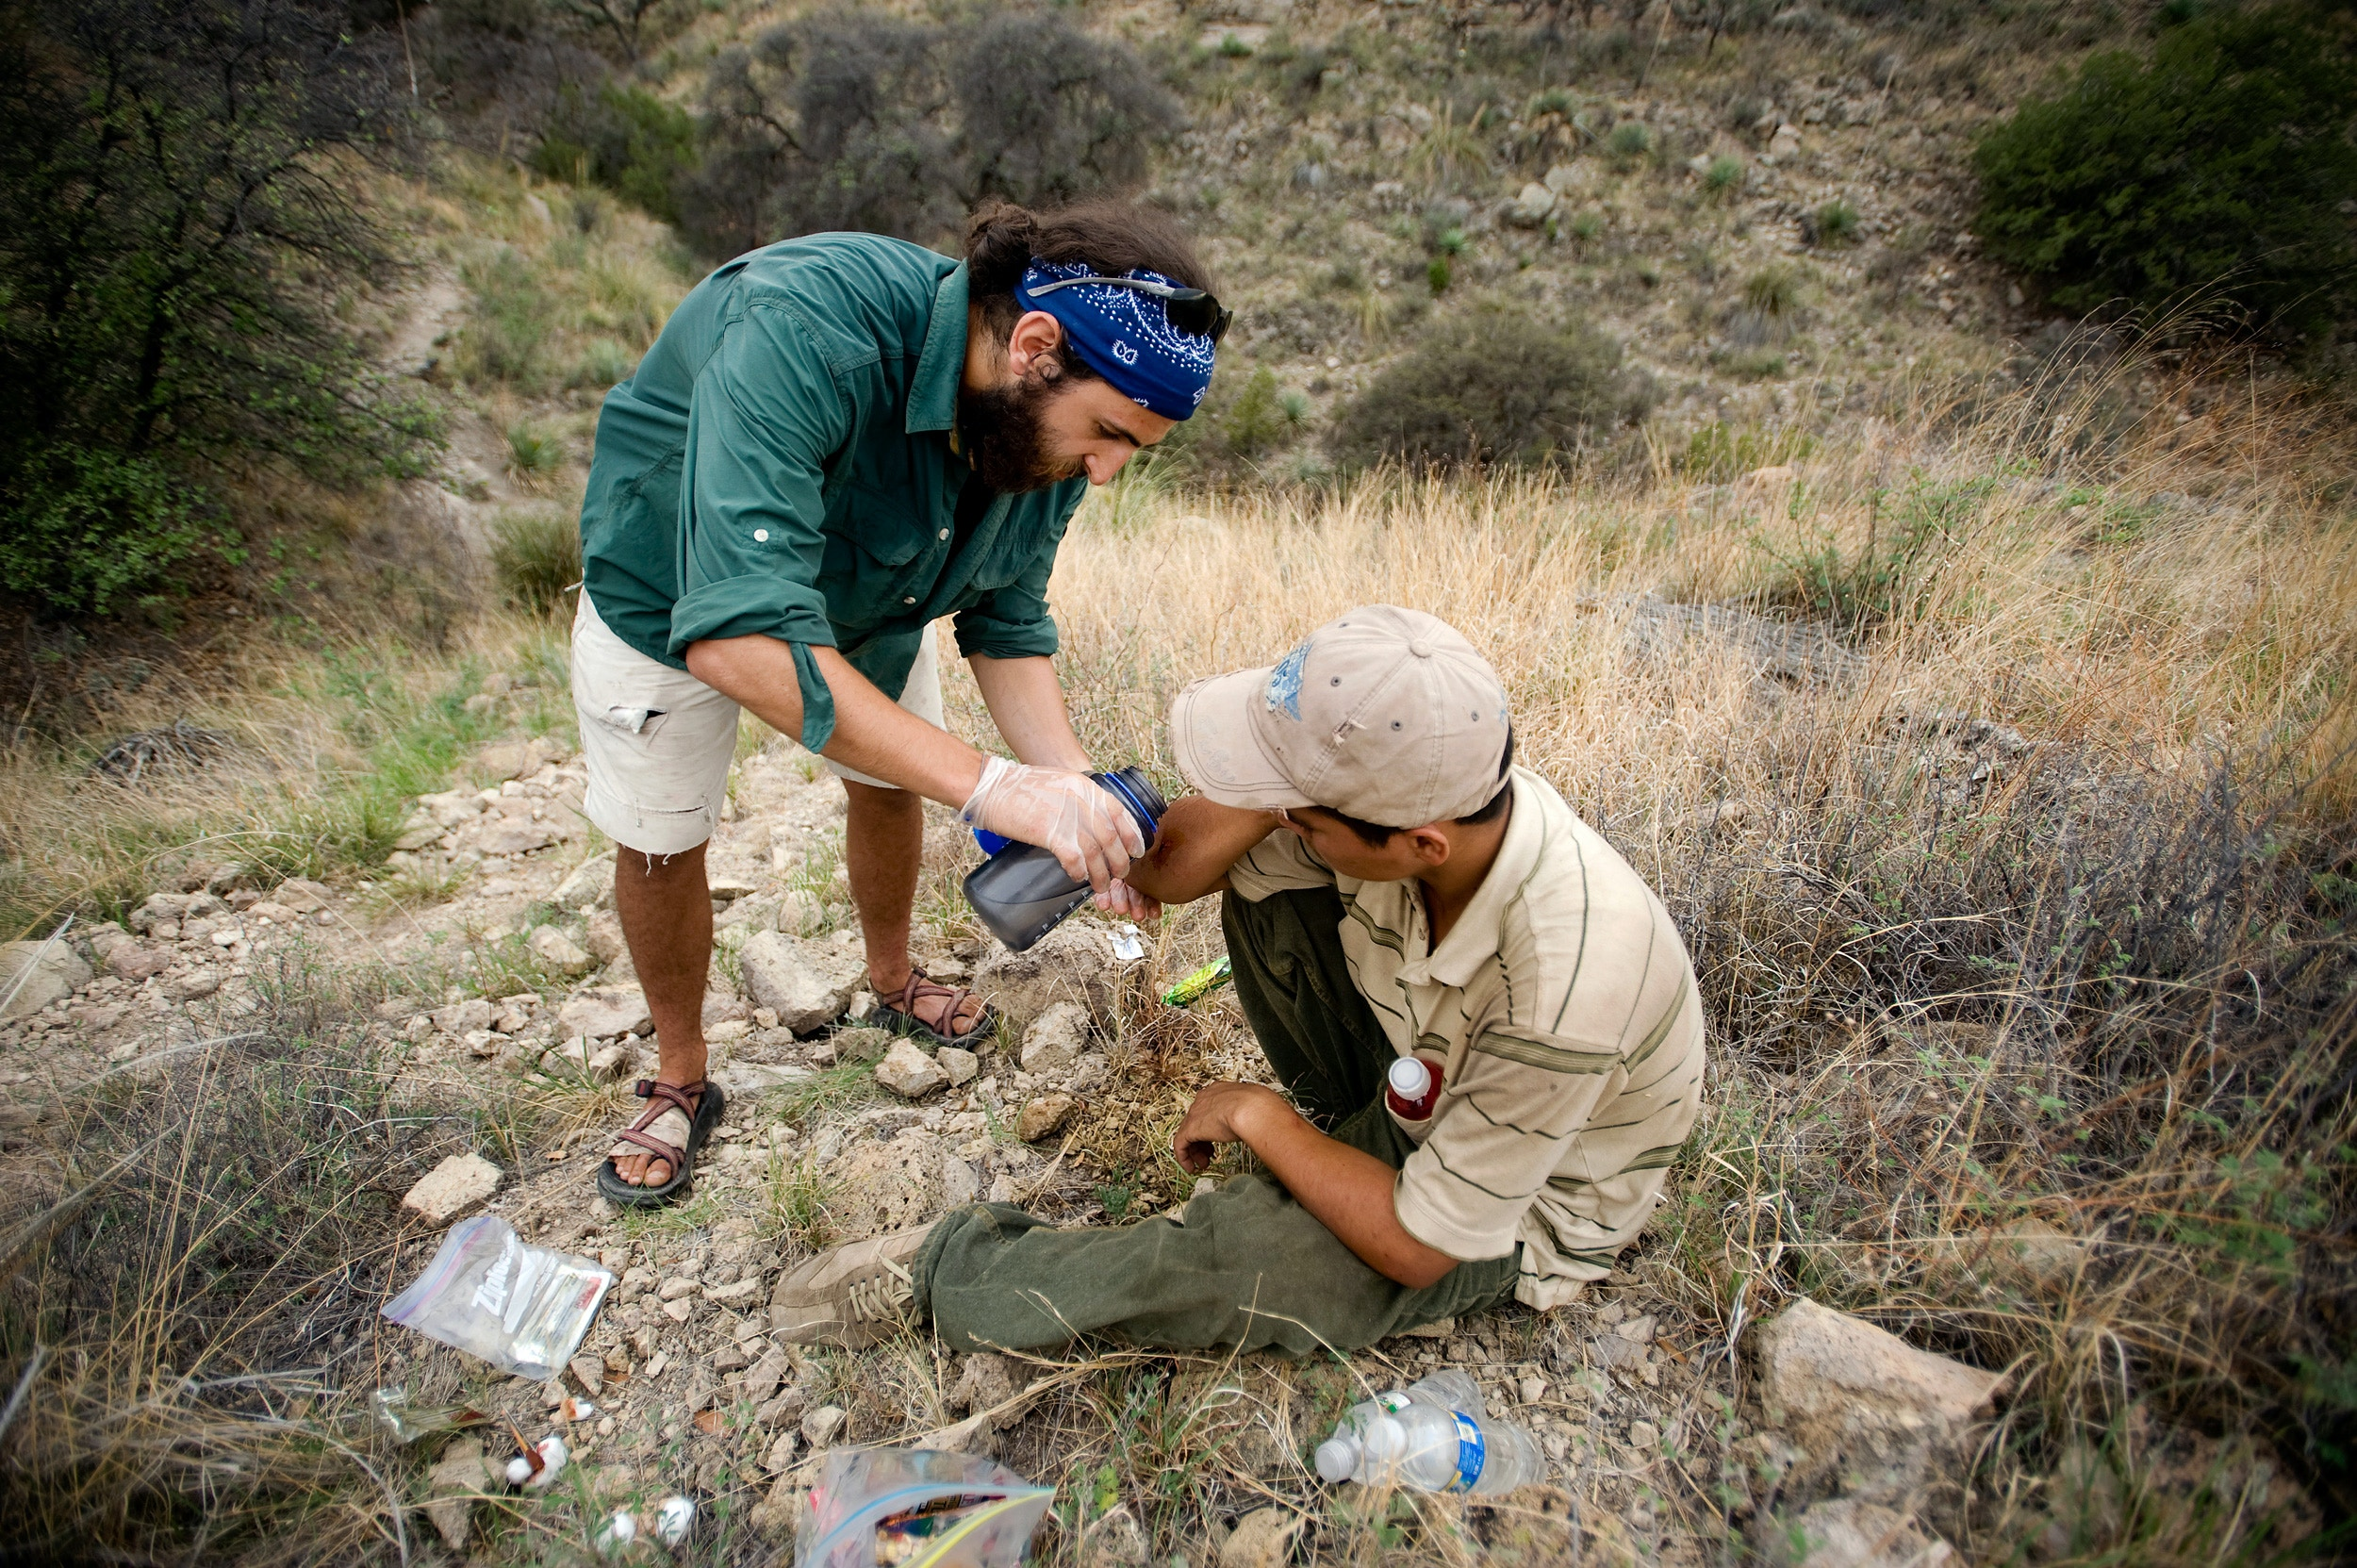 No More Deaths volunteer Jake Olzen tends to a knee injury on a migrant after an encounter during a water drop patrol near Apache Pass outside Arivaca, Arizona. No More Deaths help migrants suffering from dehydration, falls, sprained ankles, blisters, and other hazards commonly occurring from exposure in the desert.